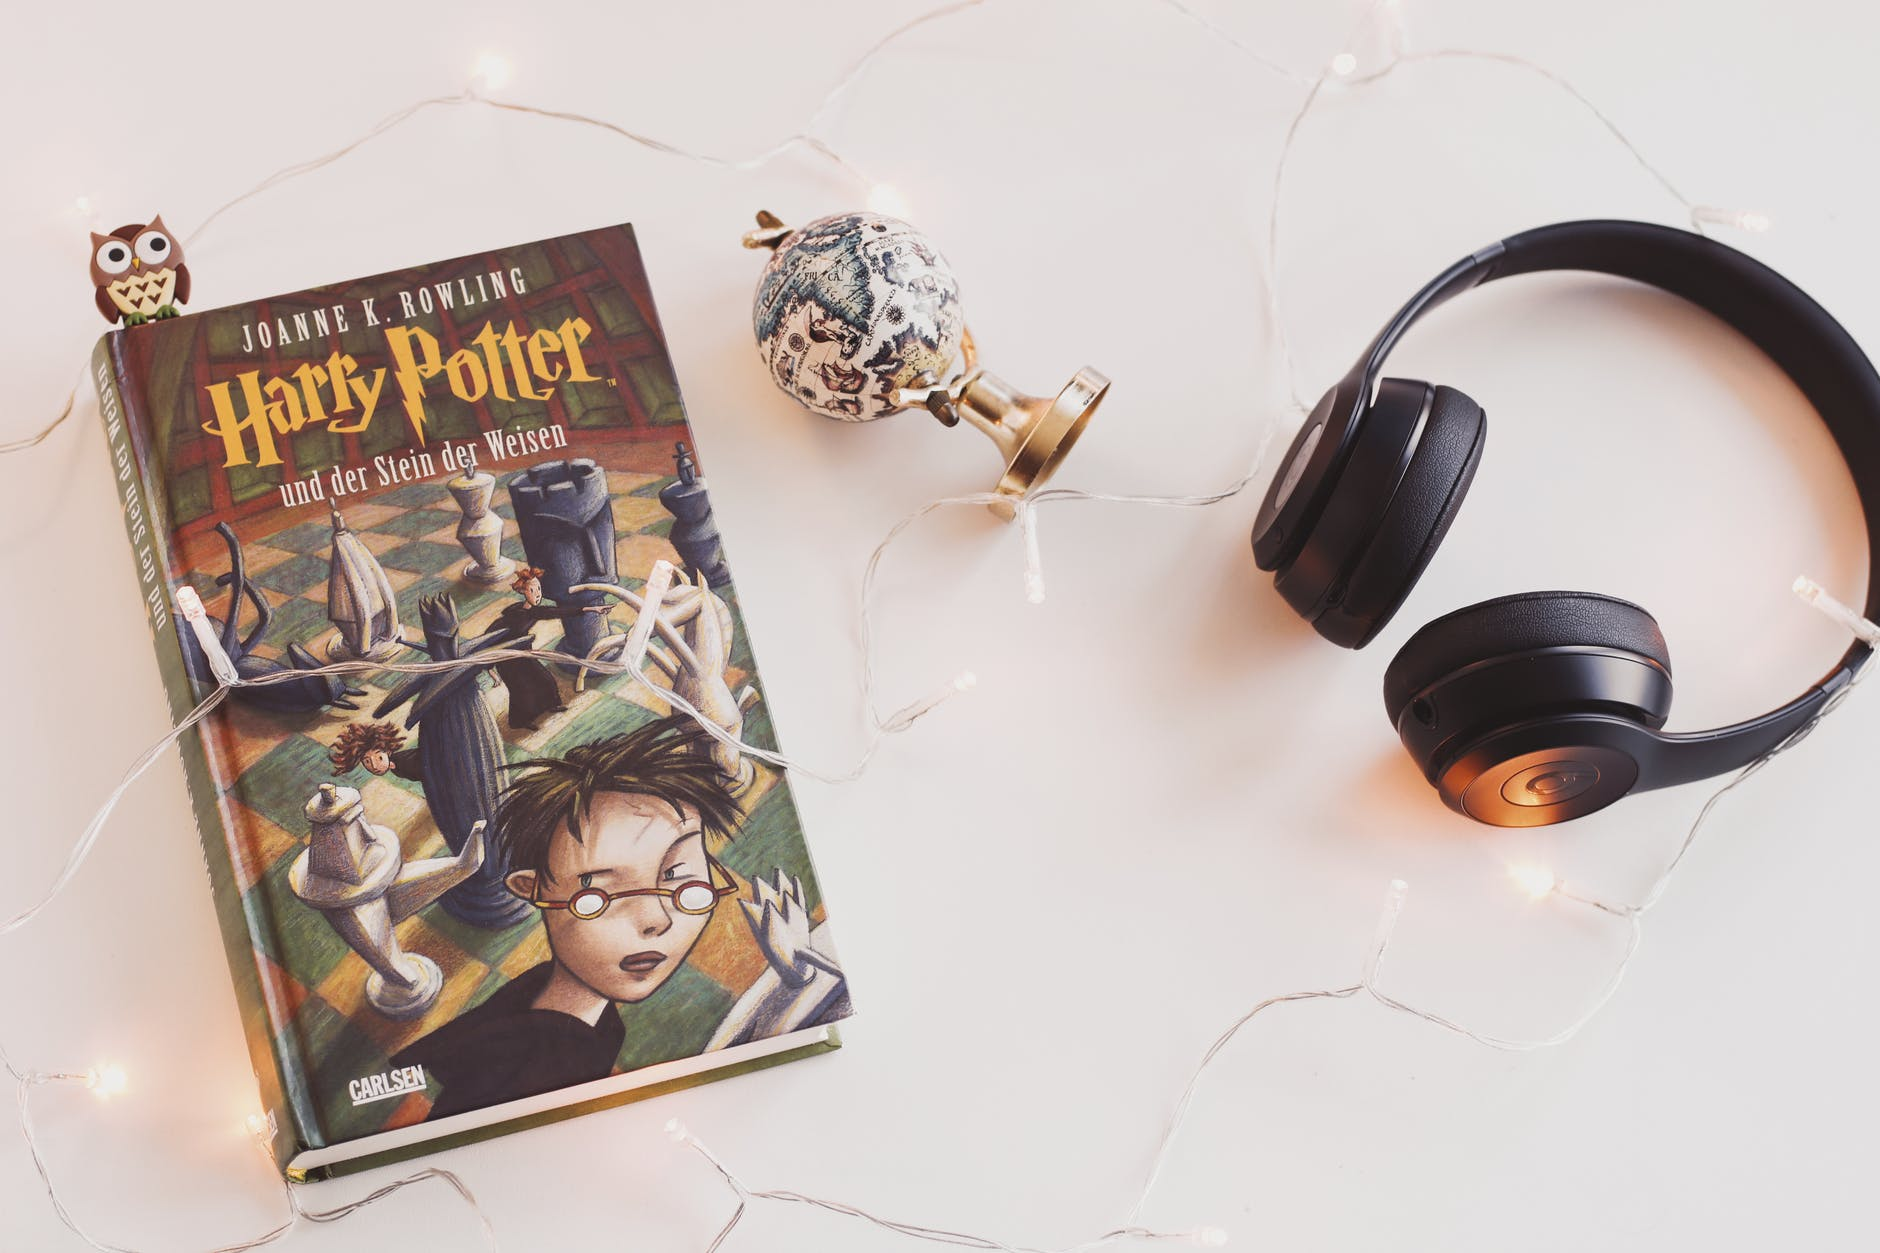 5 reasons why Harry Potter is a great read